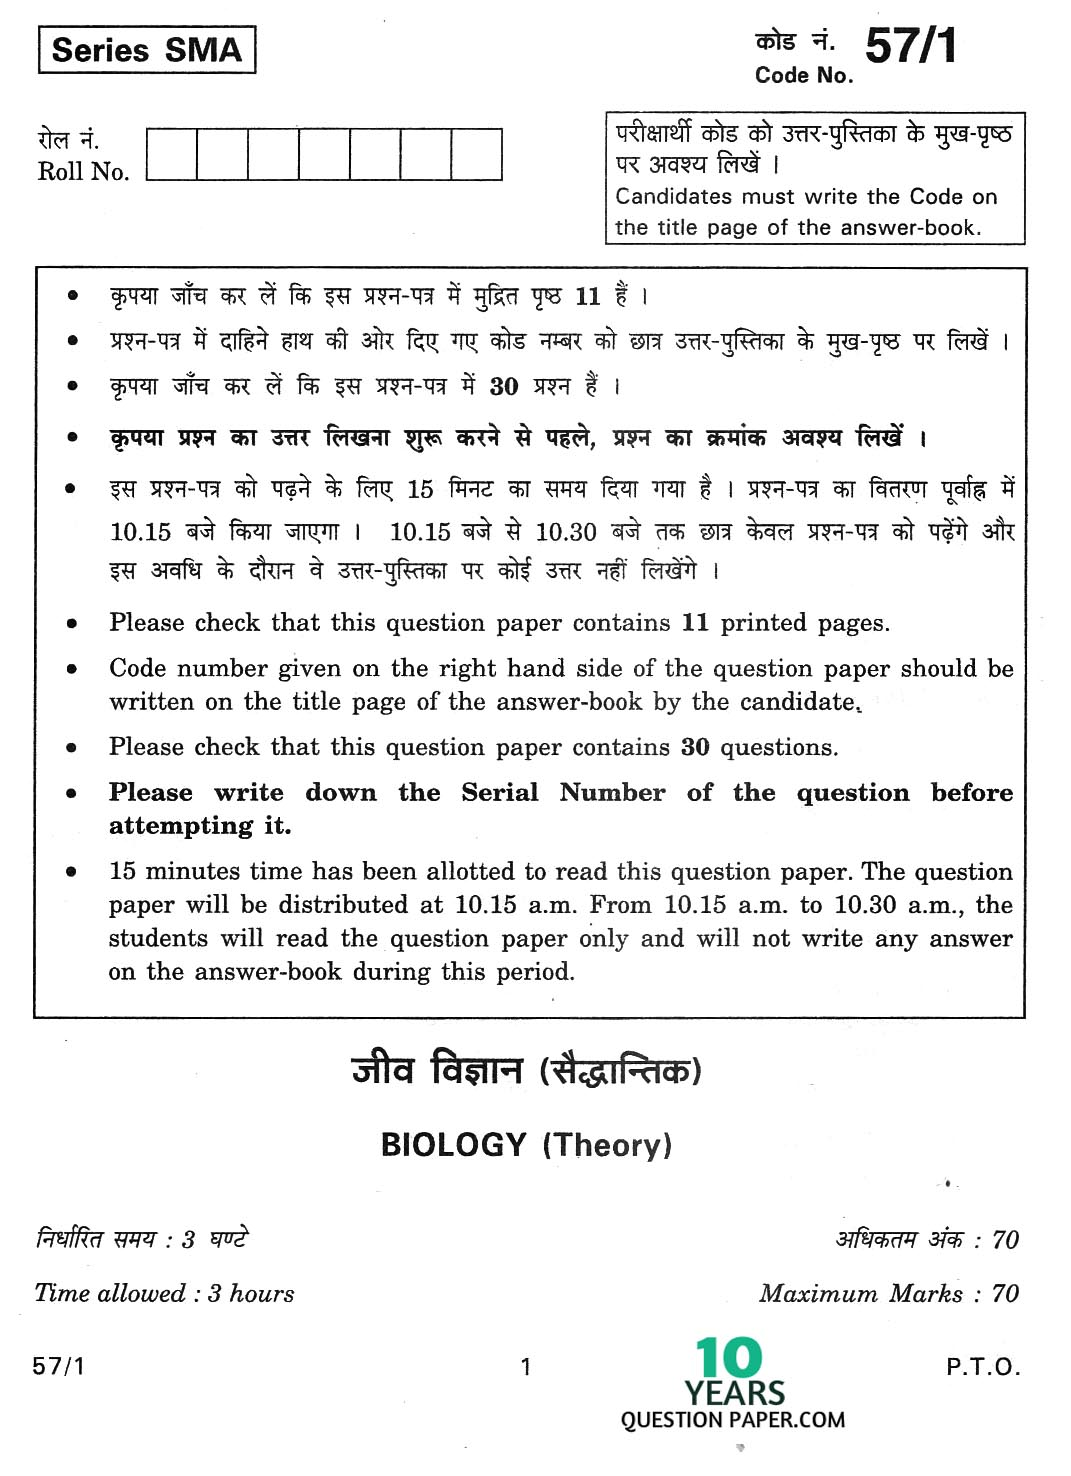 cbse class 12th 2014 Biology question paper